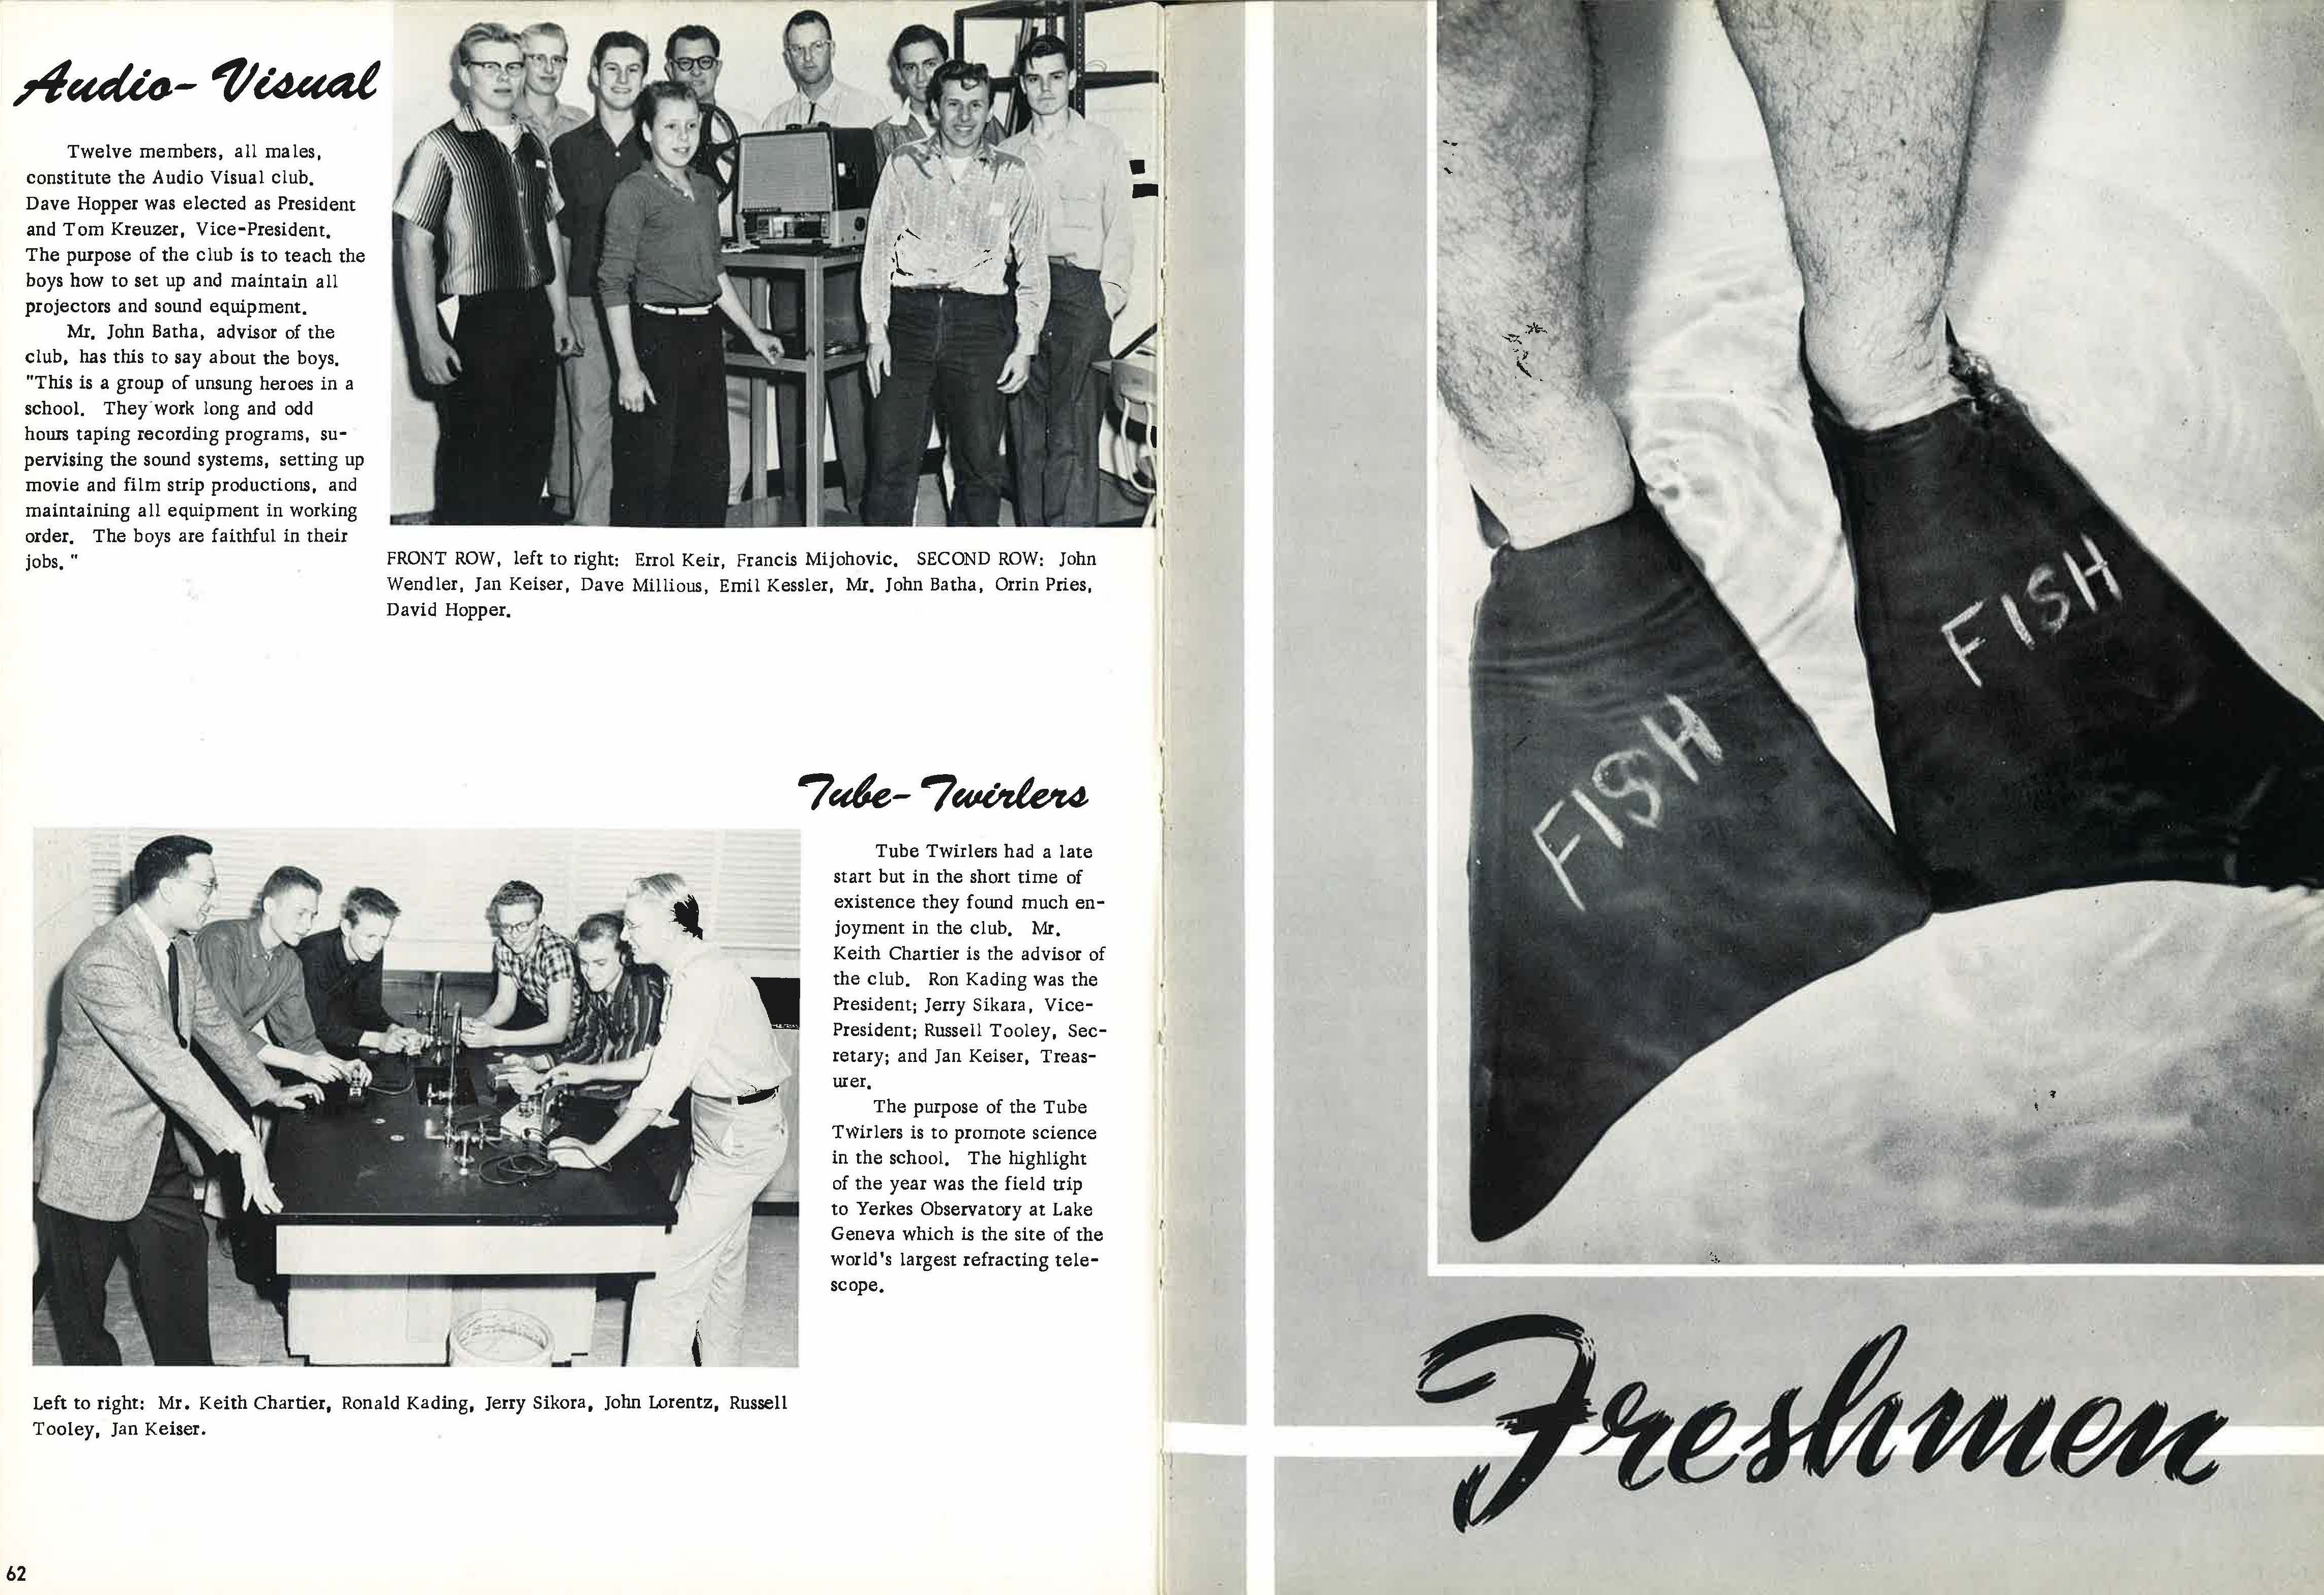 1958_Yearbook_62-63.jpg